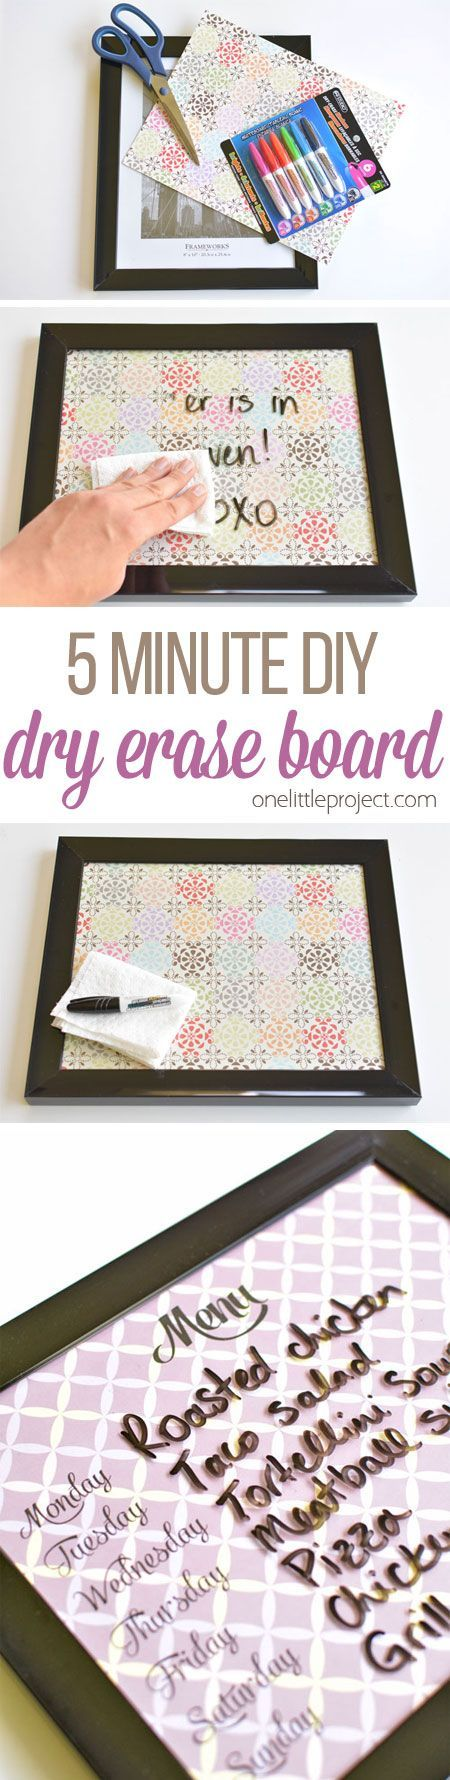 Best 25+ Dry erase board ideas on Pinterest | Board, Buy frames ...